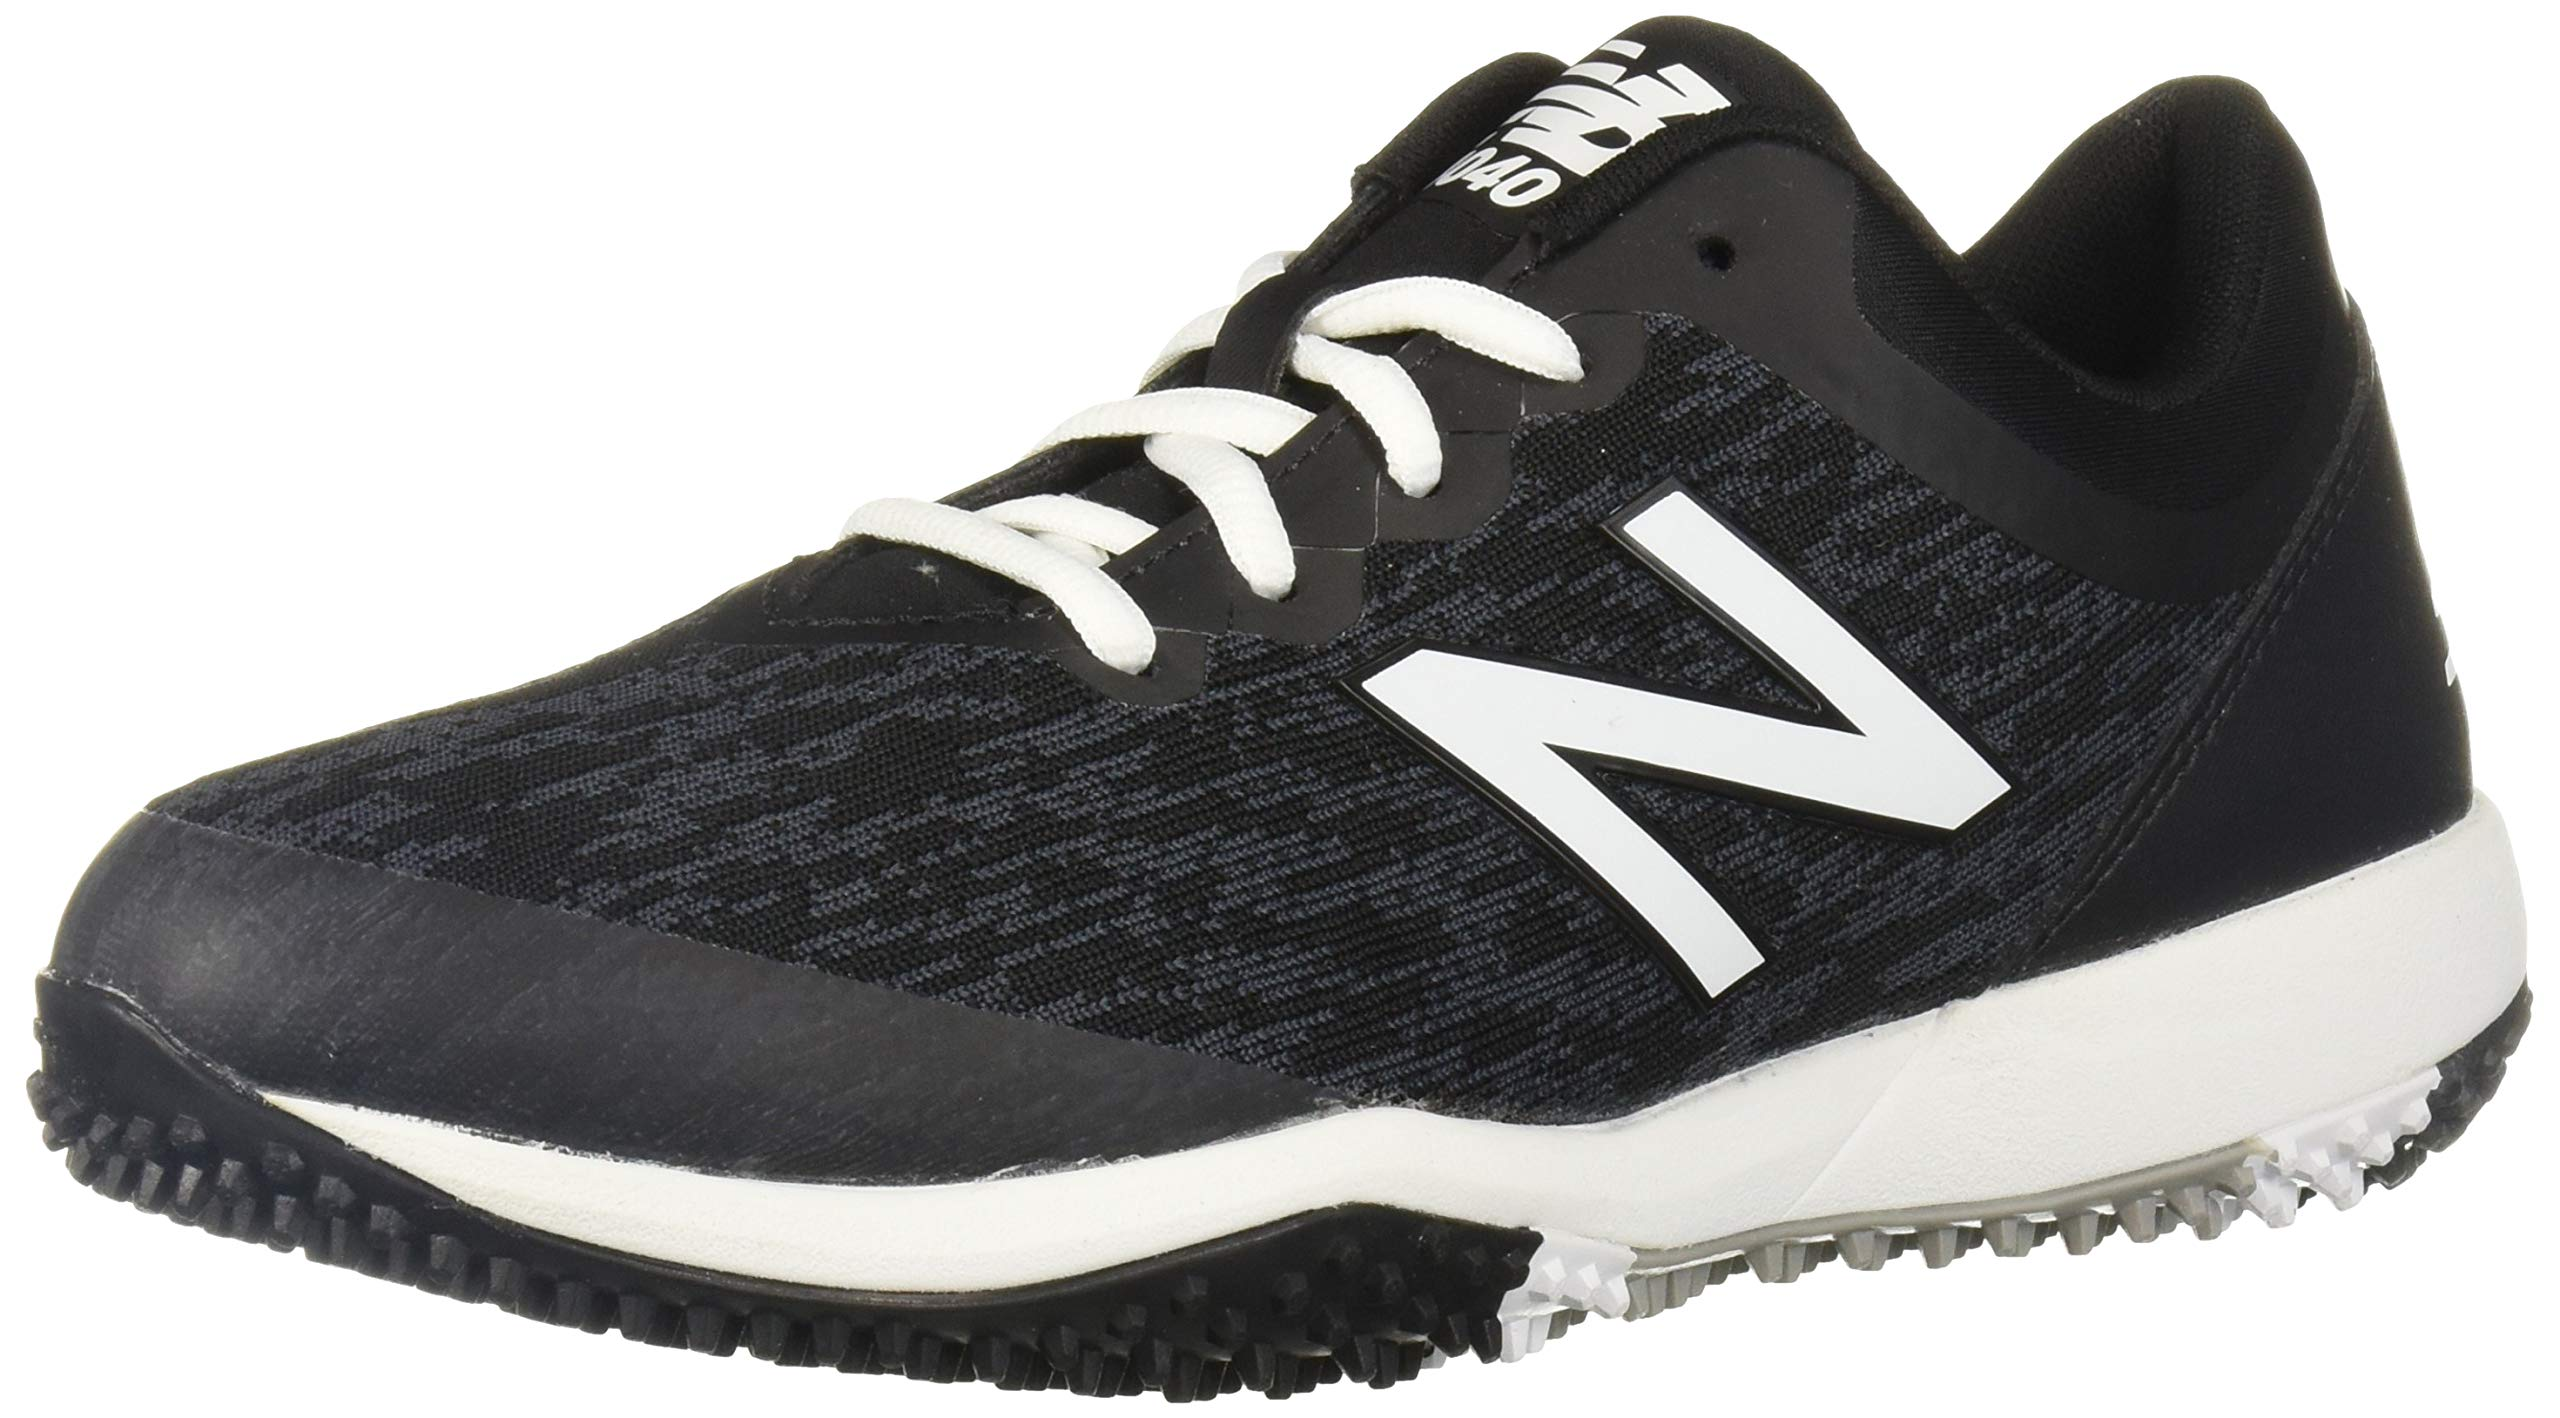 New Balance Men's 4040v5 Turf Running Shoe, Black/White, 5 D US